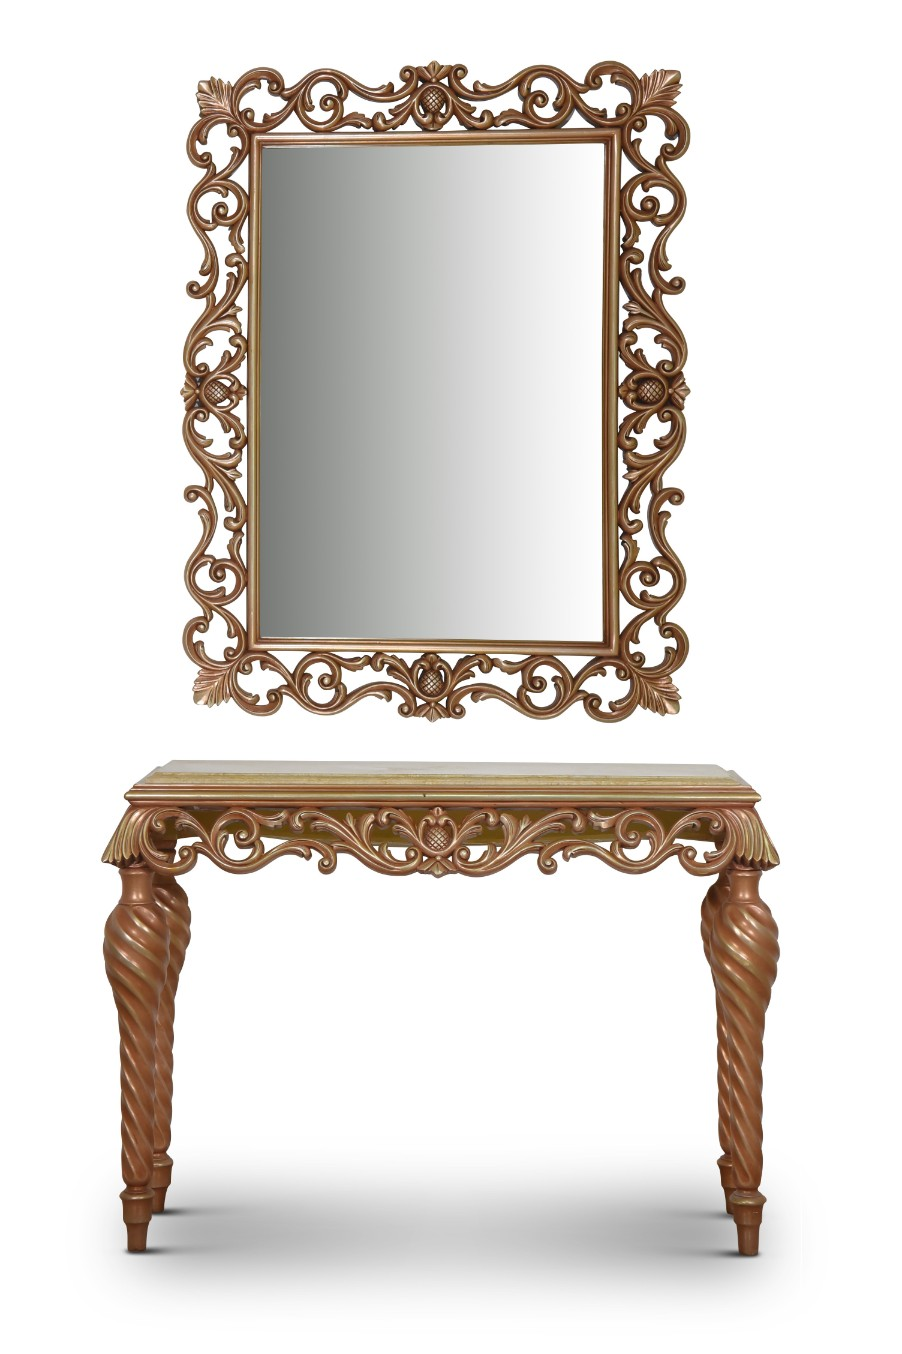 MADE TO ORDER / Héliotrope,French Style, Rose Gold Leaf, Marble Top, Console and Mirror Set